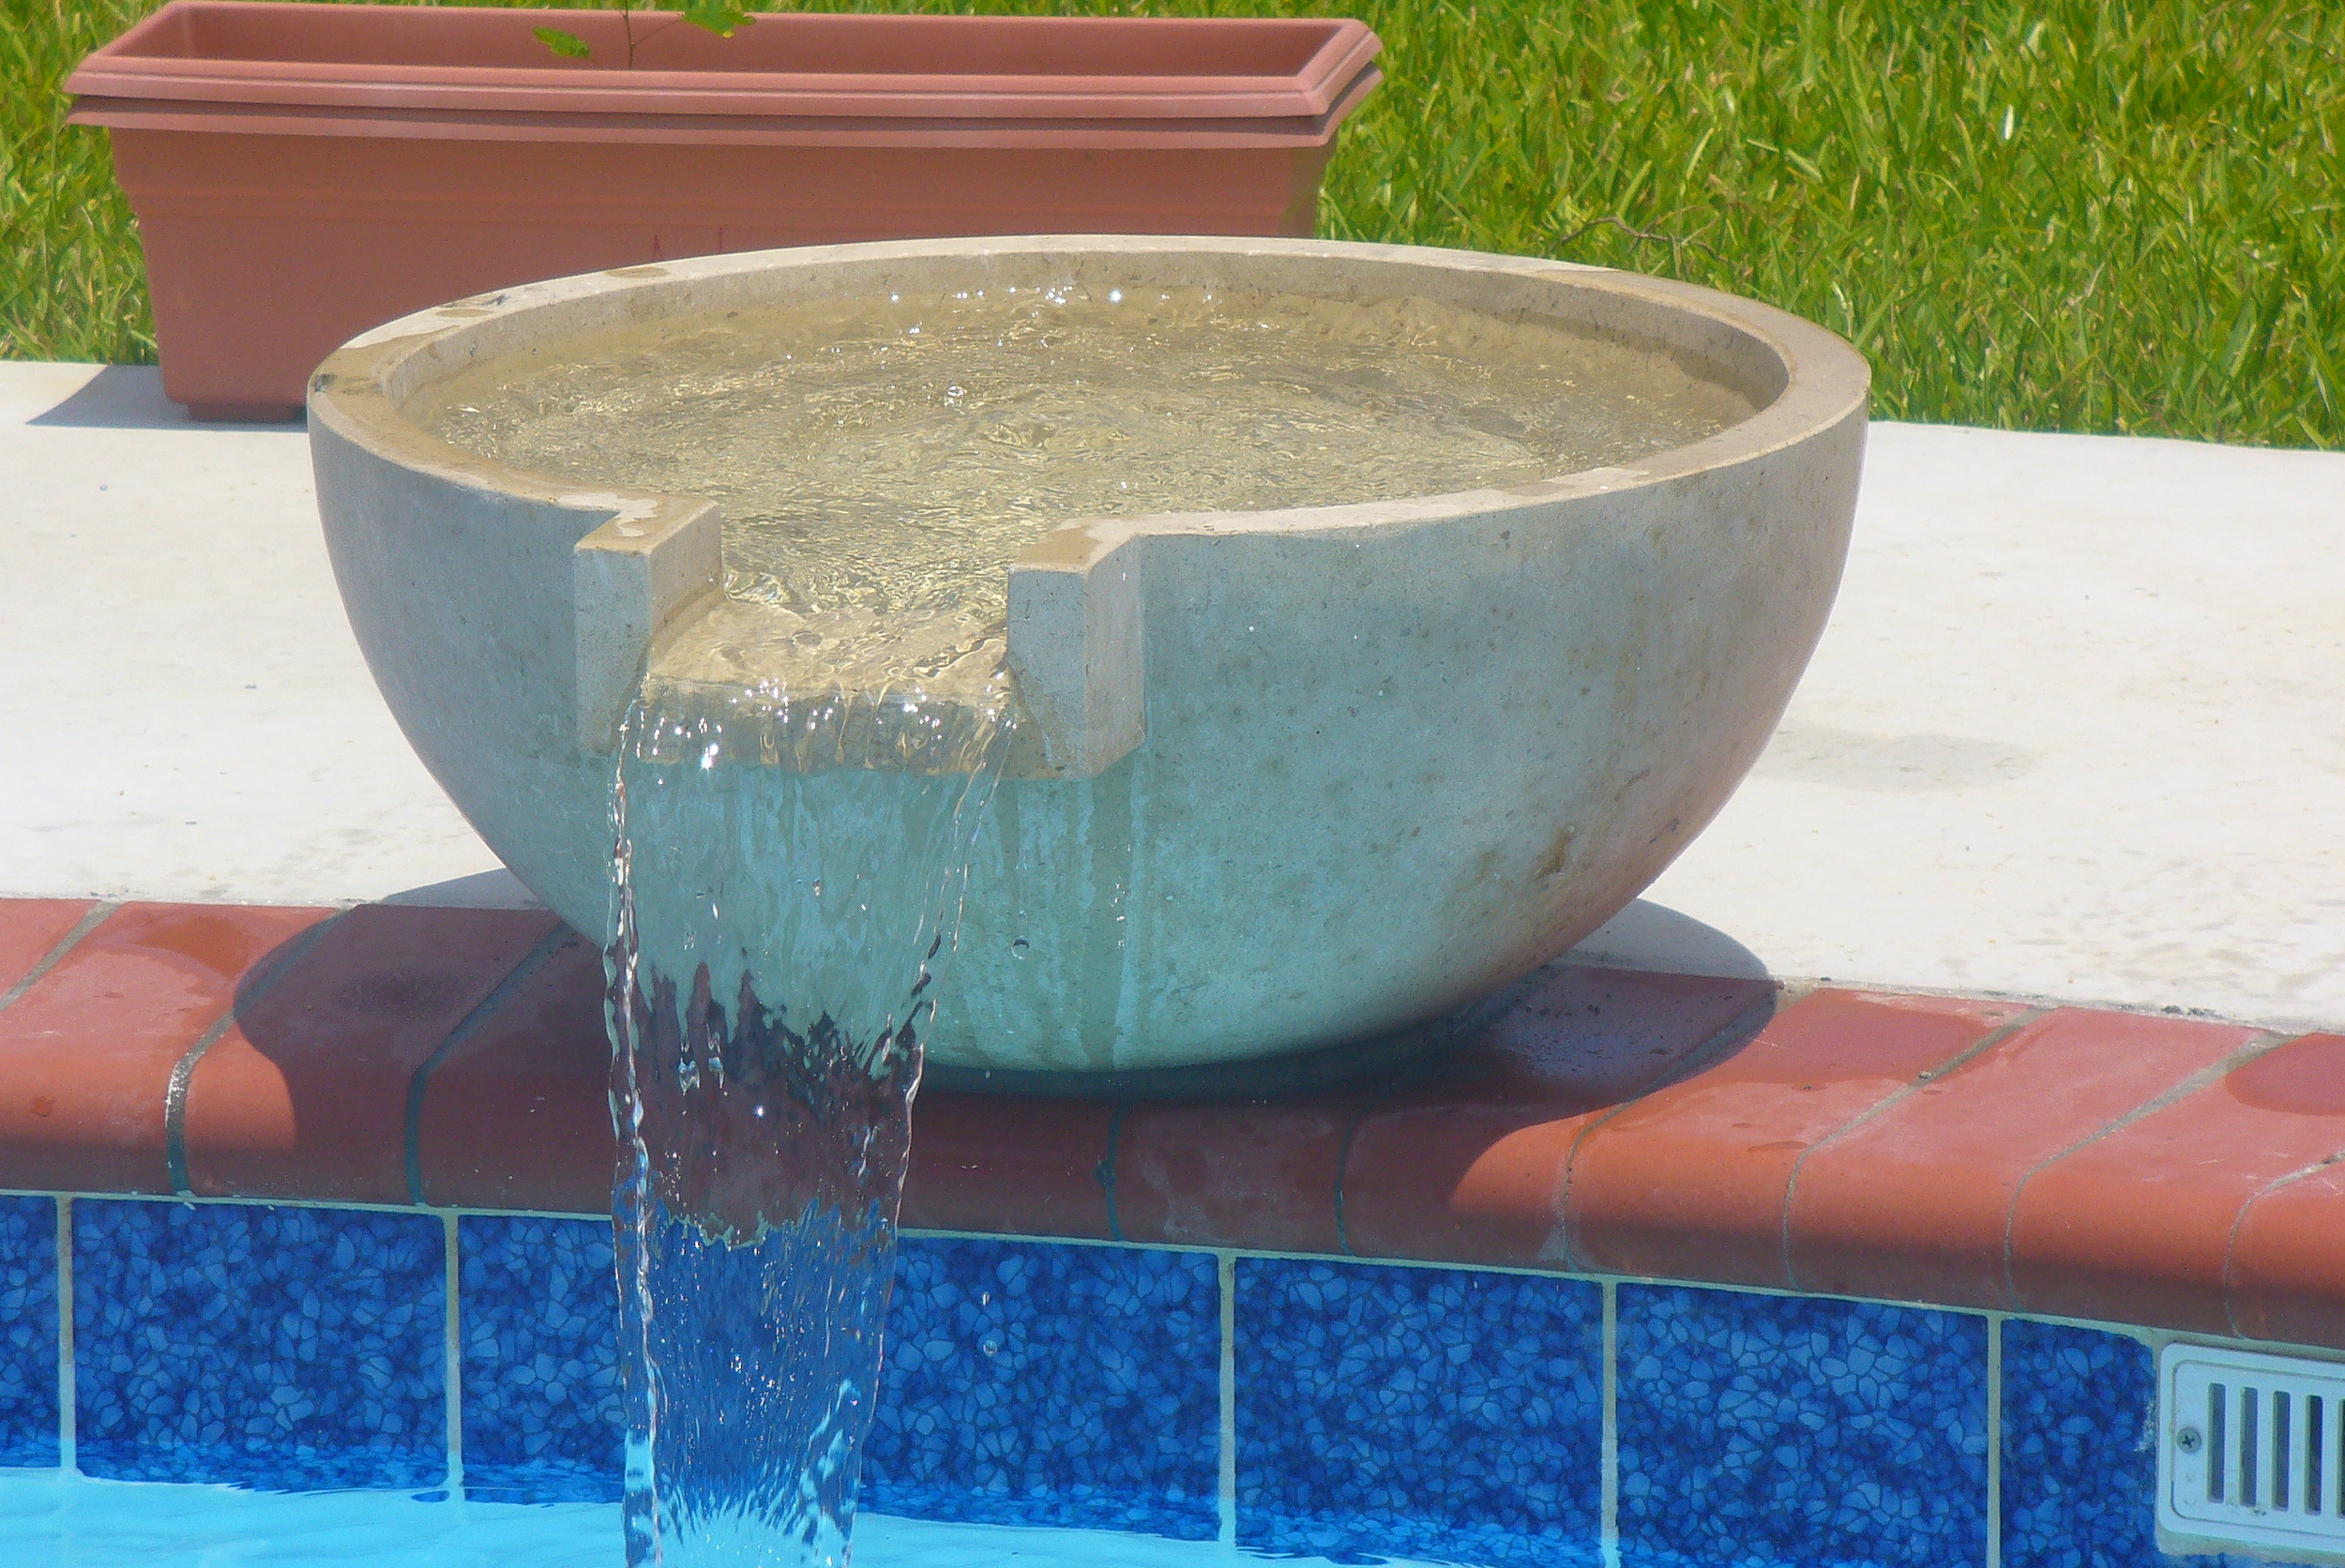 Bowl Scupper -  T he perfect way to add a splash of creativity to your pool area.